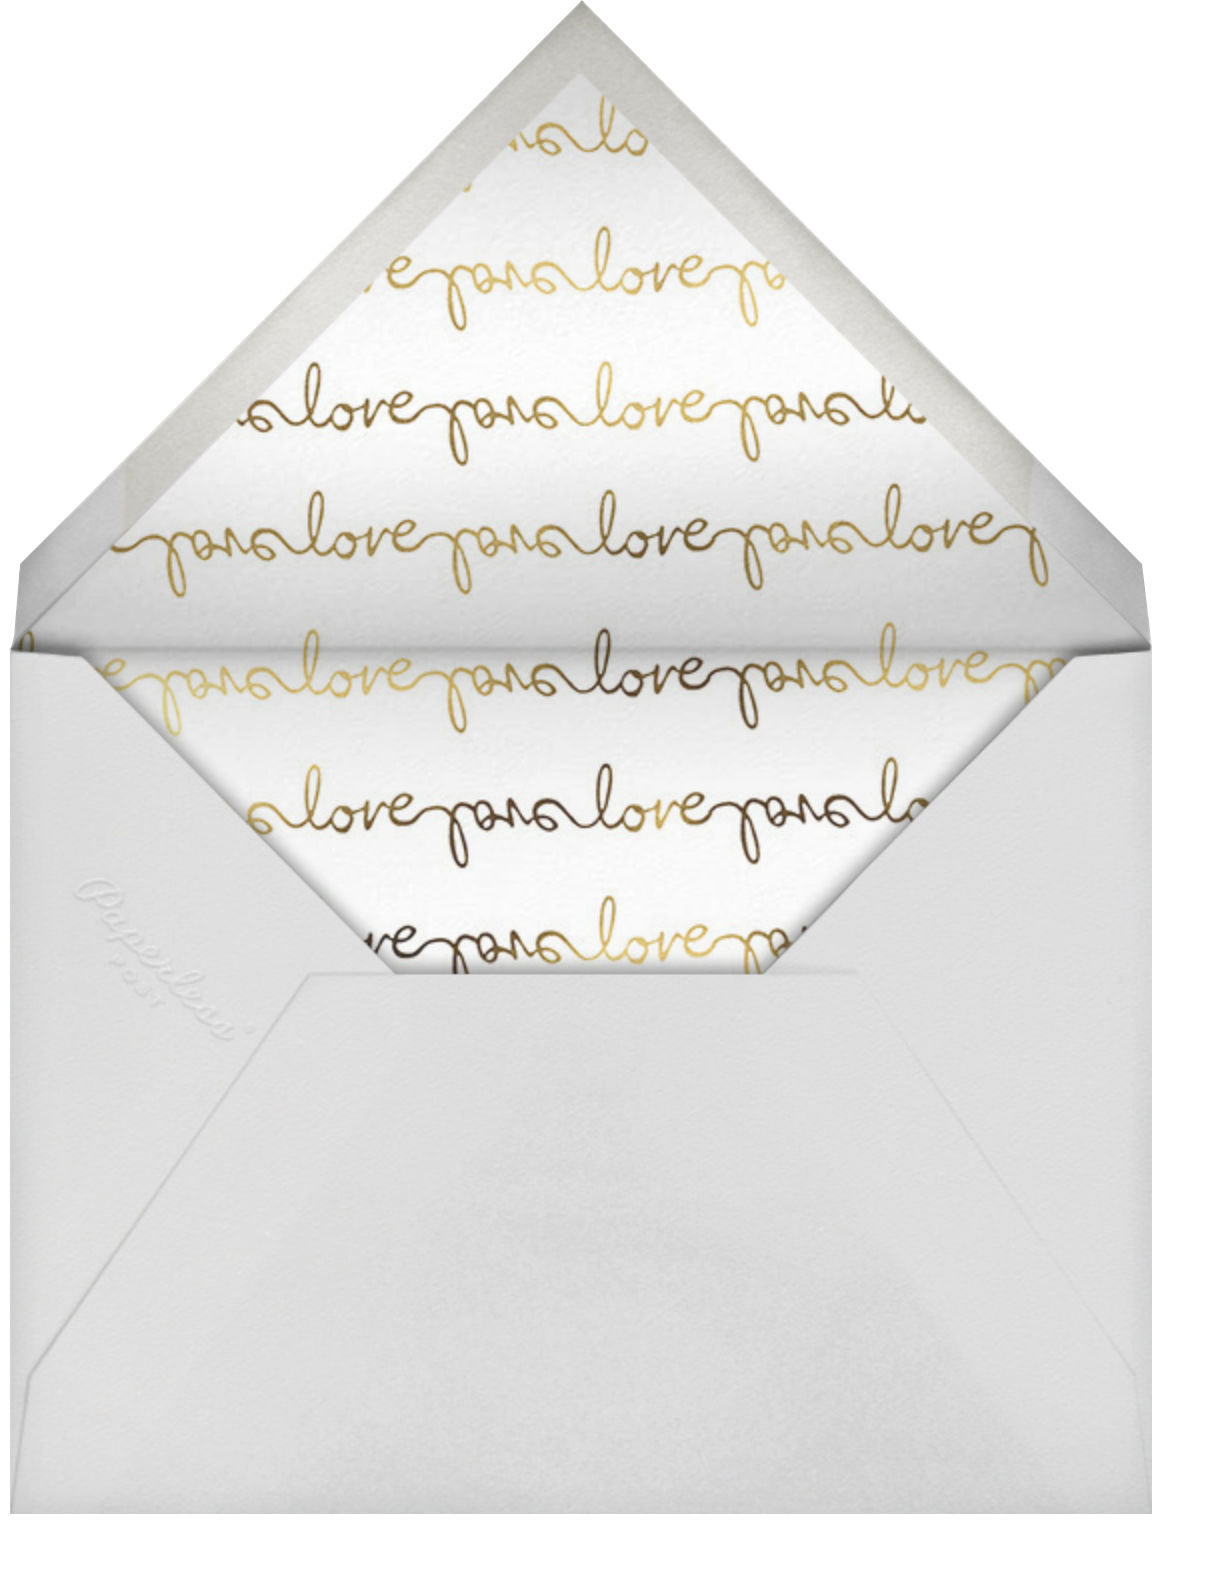 Third's a Charm - Lilac - kate spade new york - Engagement party - envelope back